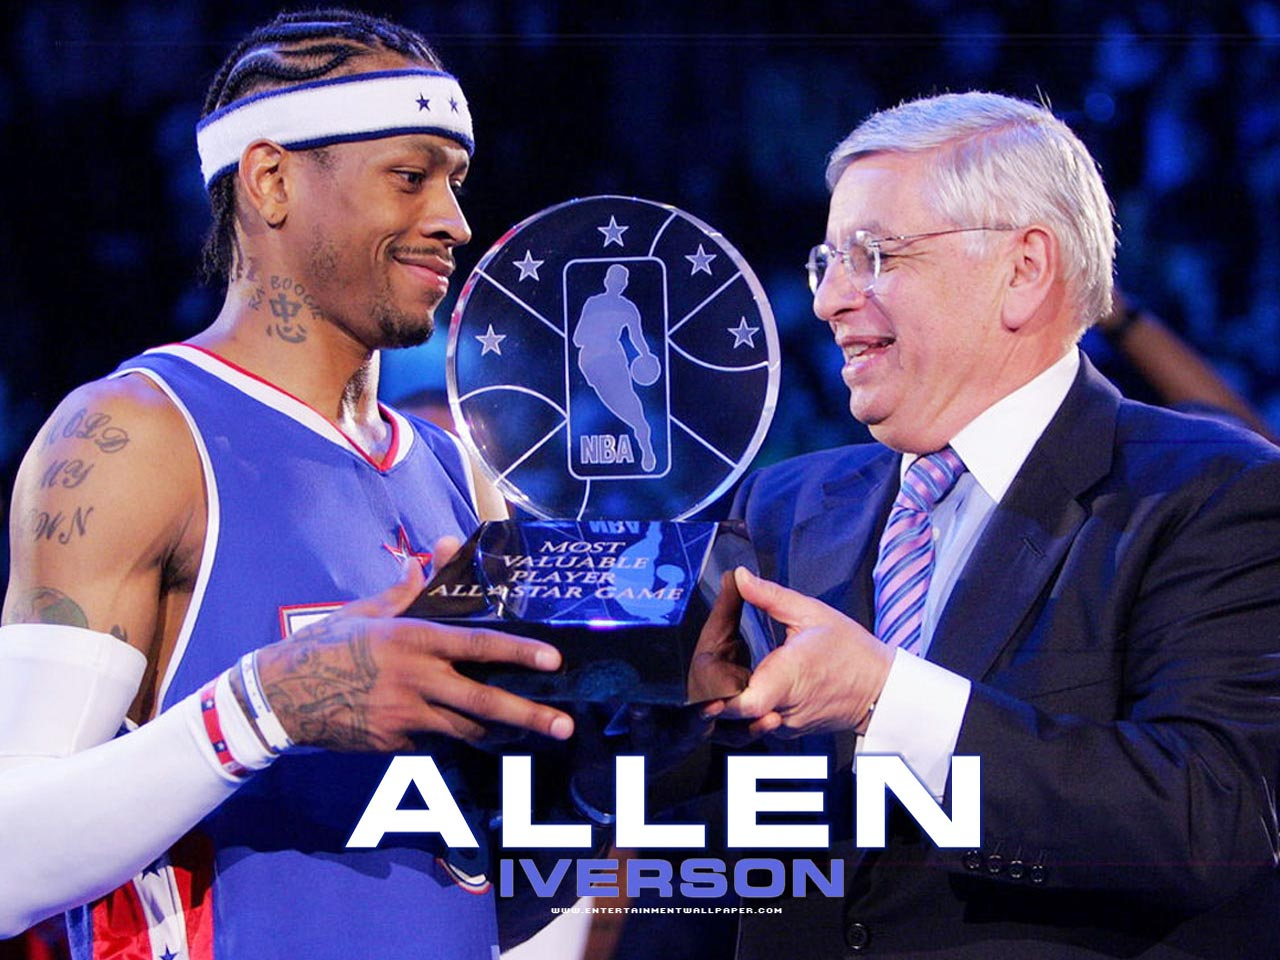 Allen Iverson Rookie Of The Year